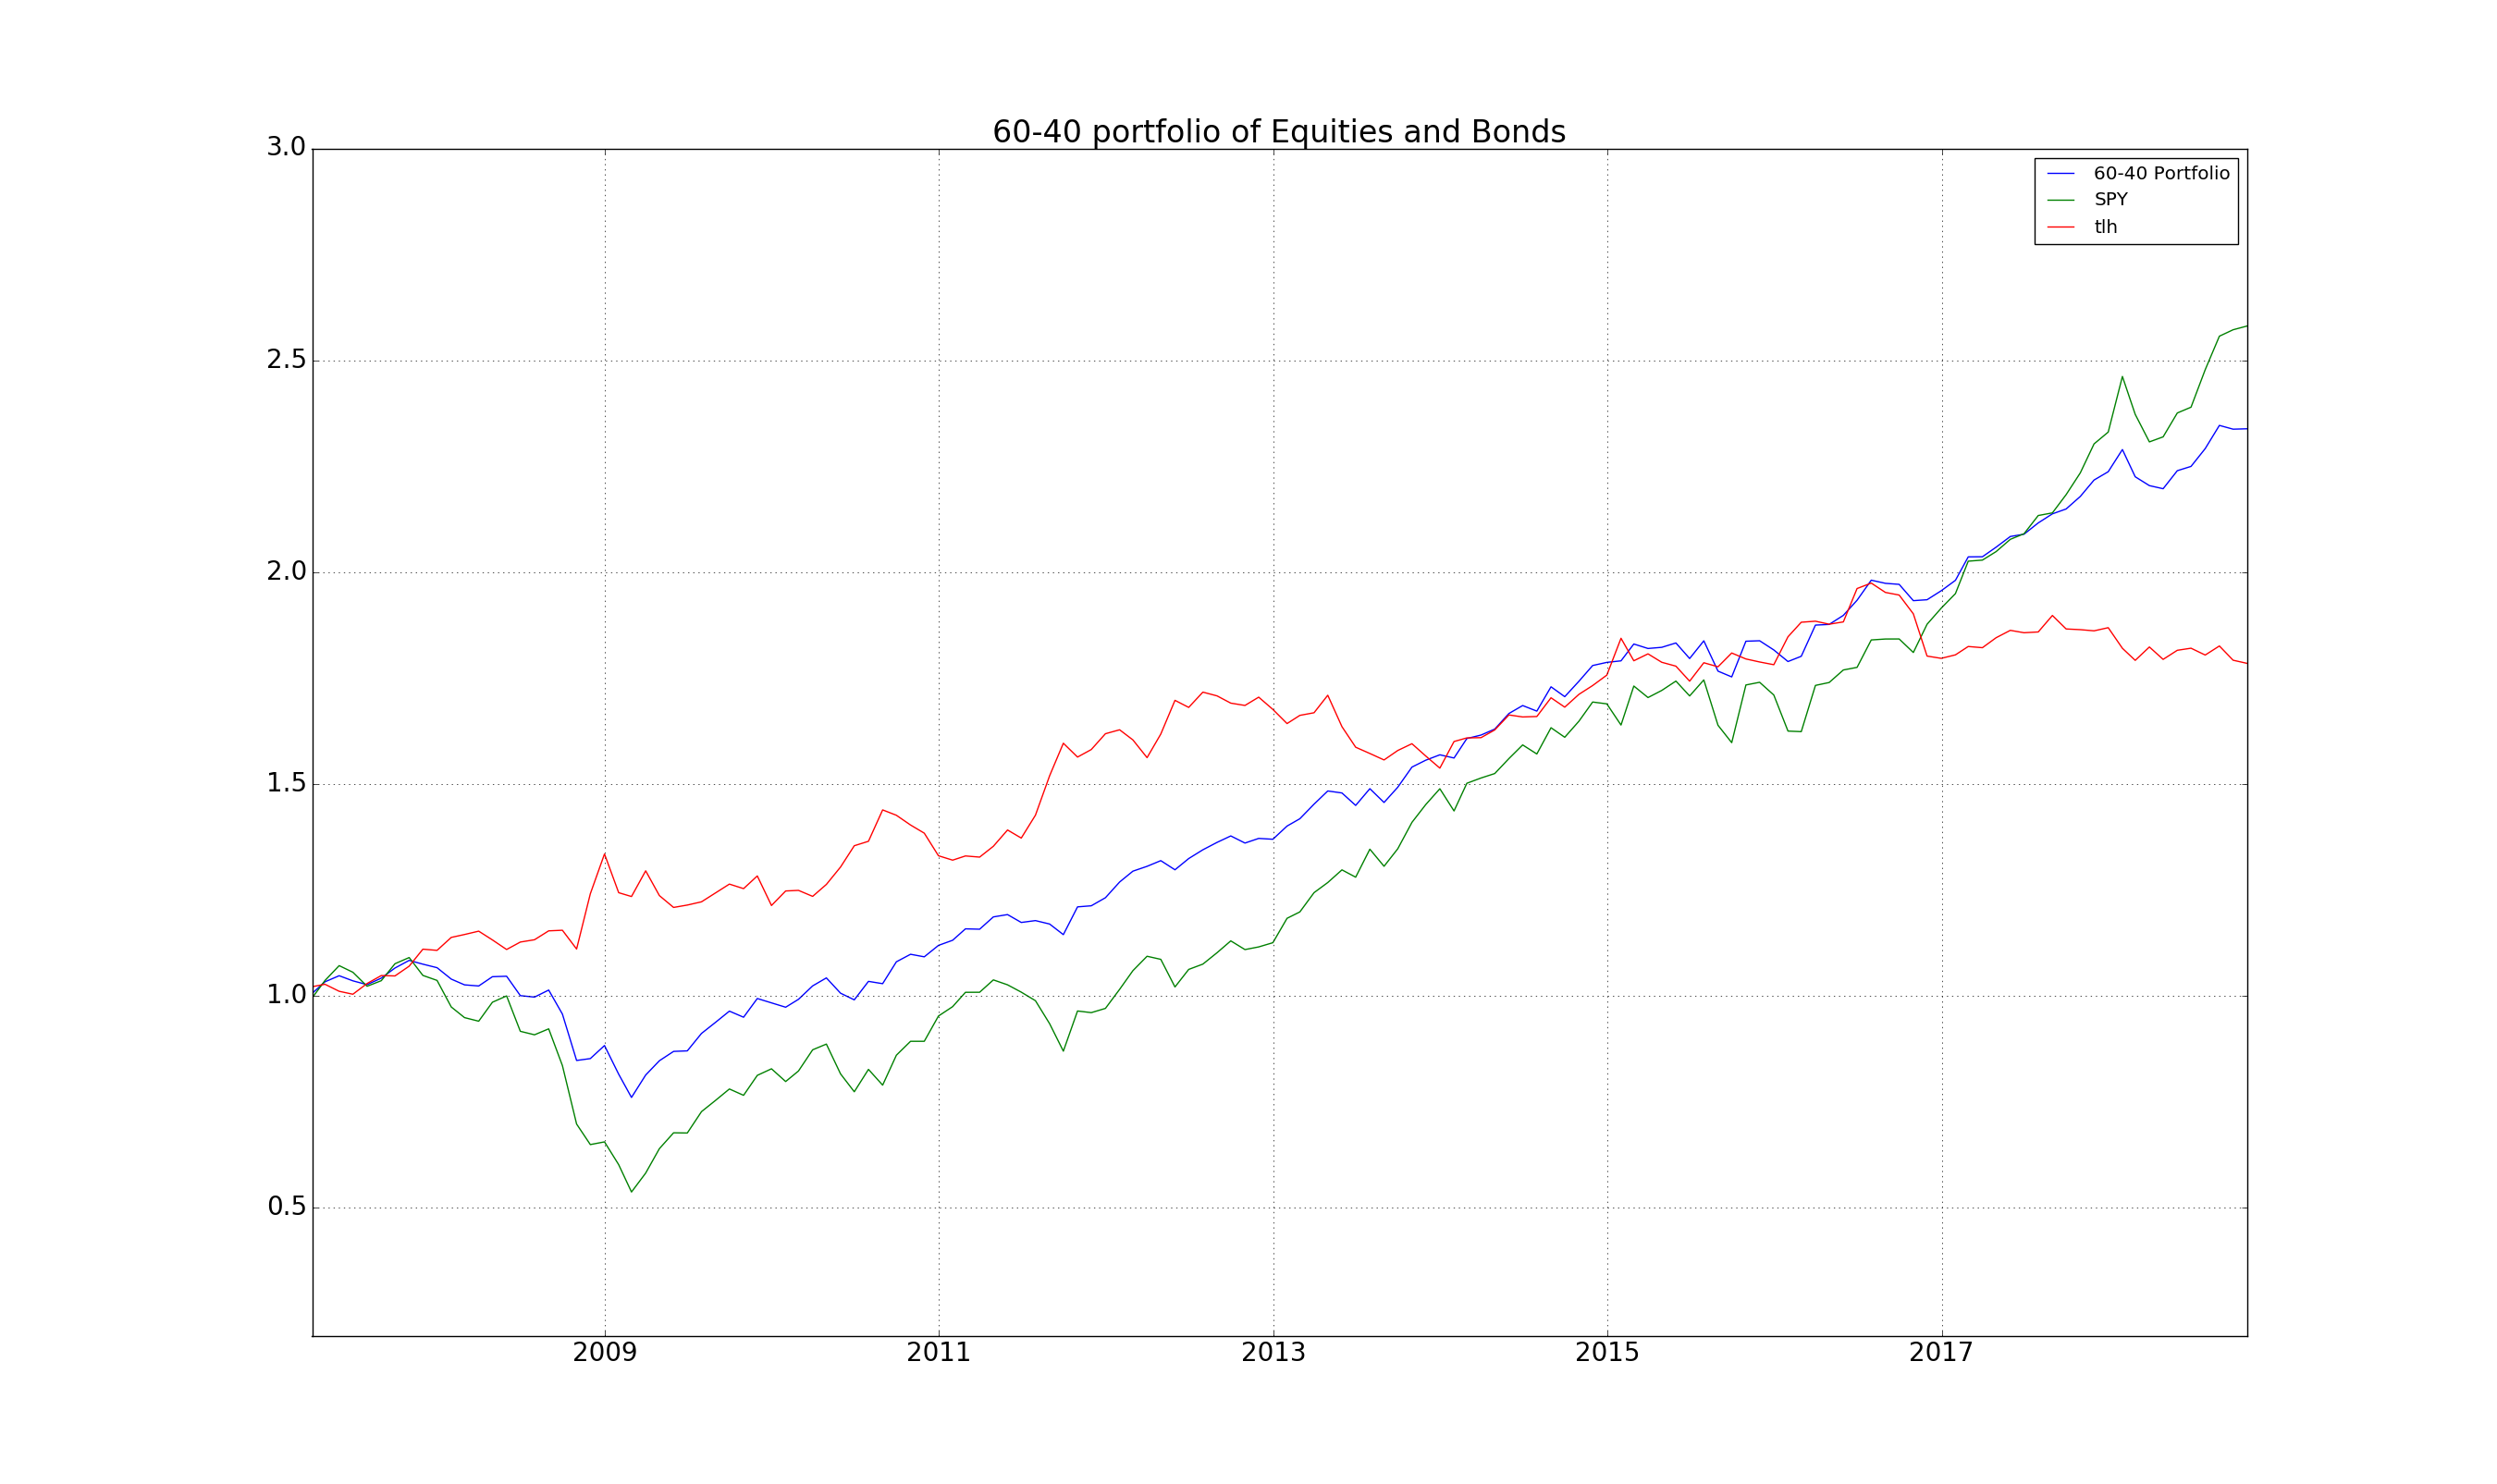 60-40 Equity Bond Portfolio since 2008